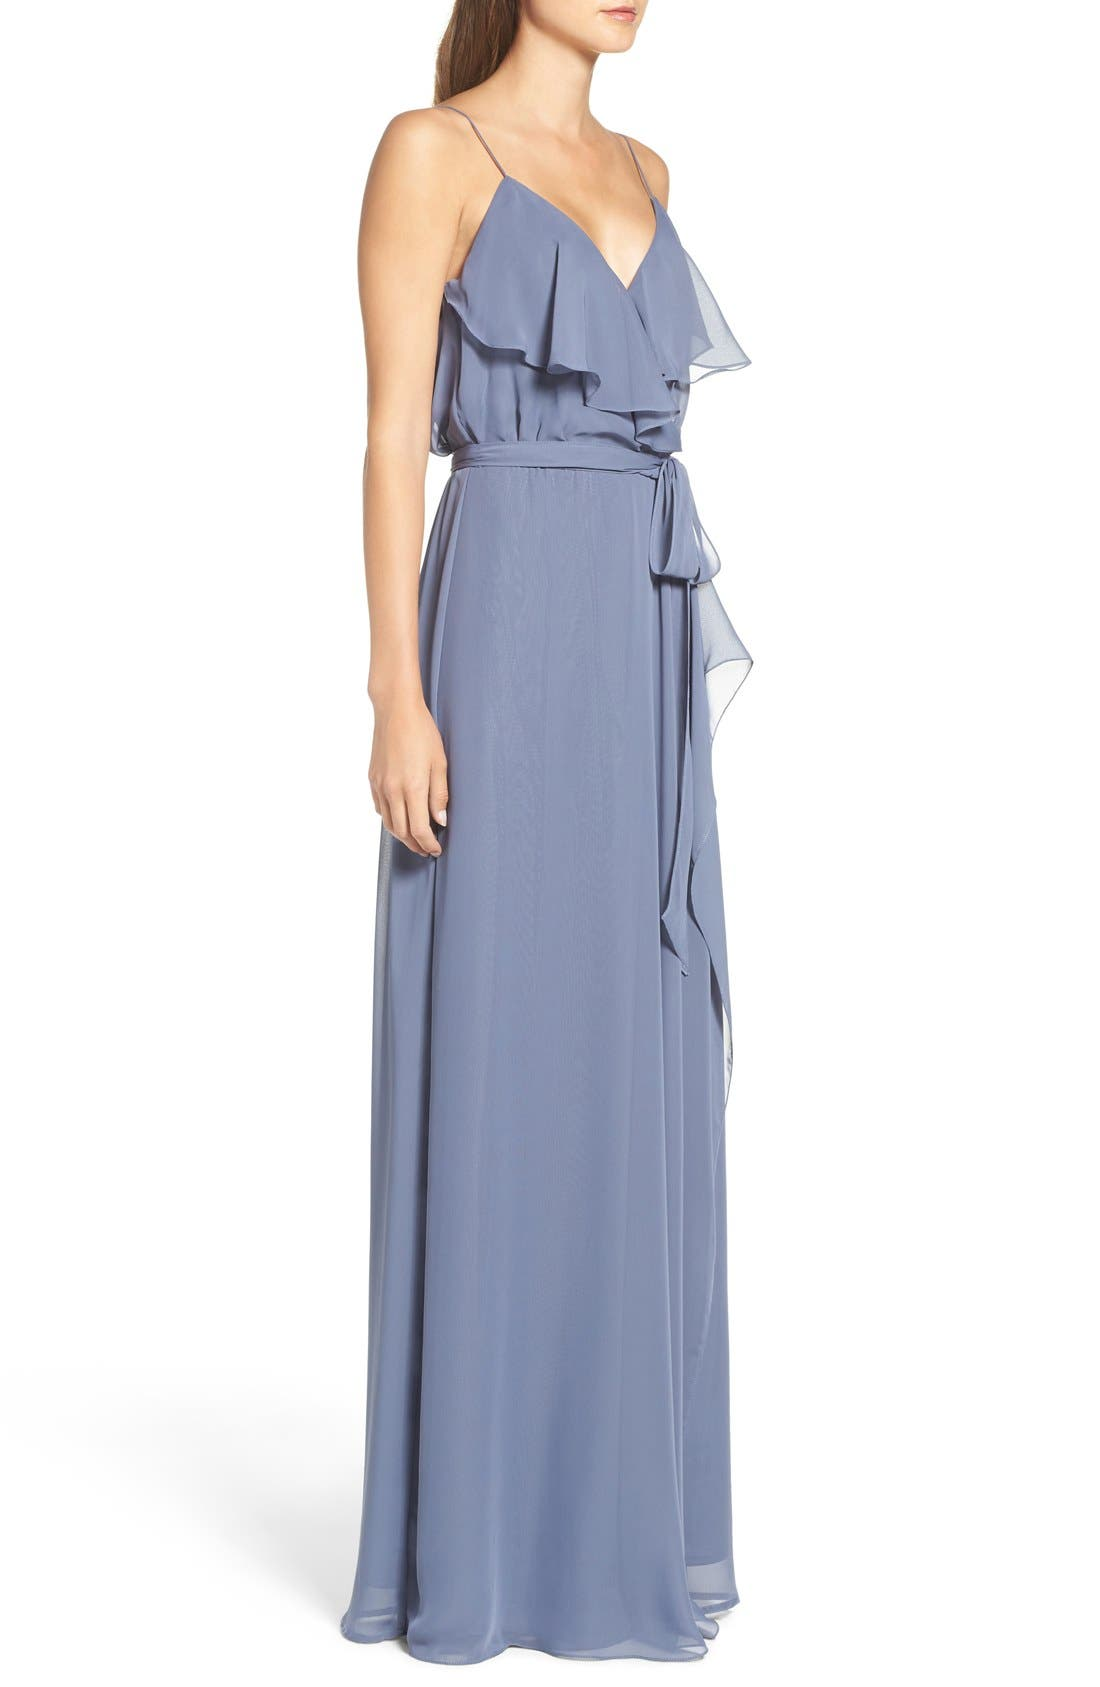 'Drew' Ruffle Front Chiffon Gown,                             Alternate thumbnail 4, color,                             Blue Steel